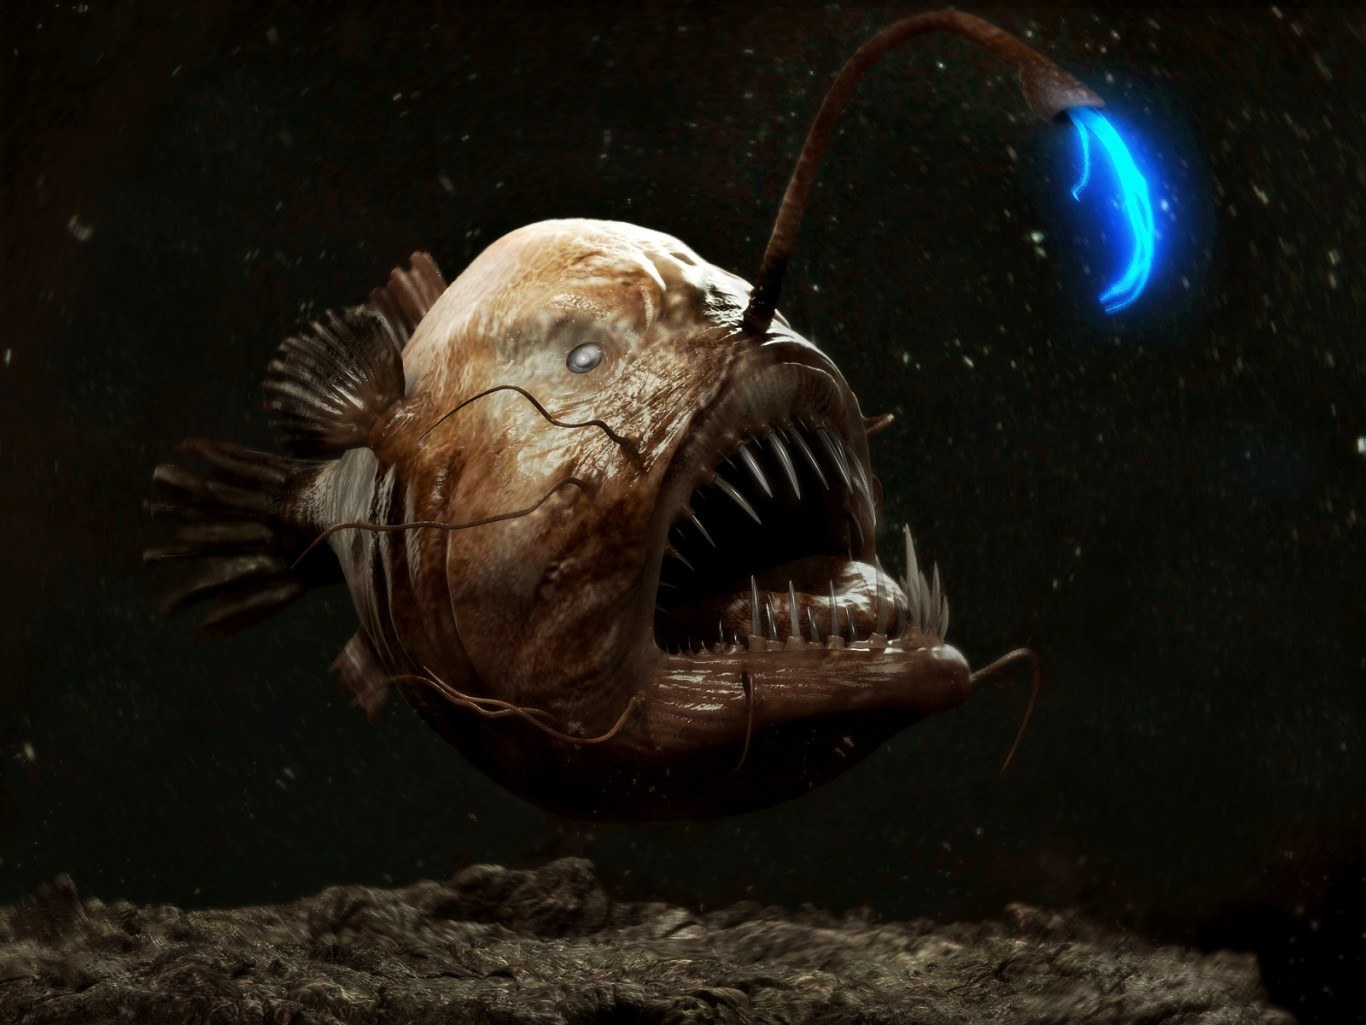 SIX DEEP SEA DWELLERS THAT LOVE TO LIGHT UP | Stories ...